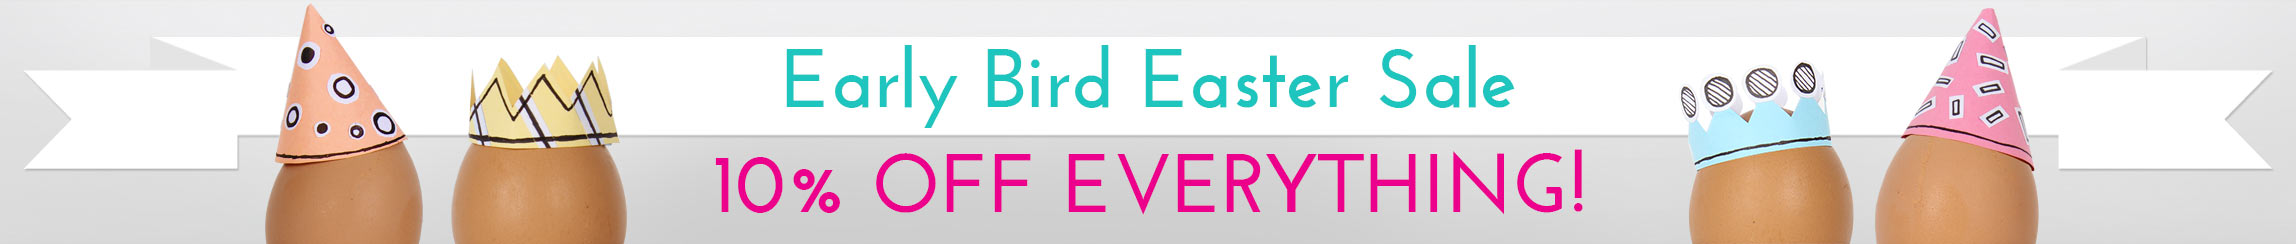 Early Bird Easter Sale - 10% Off Everything!